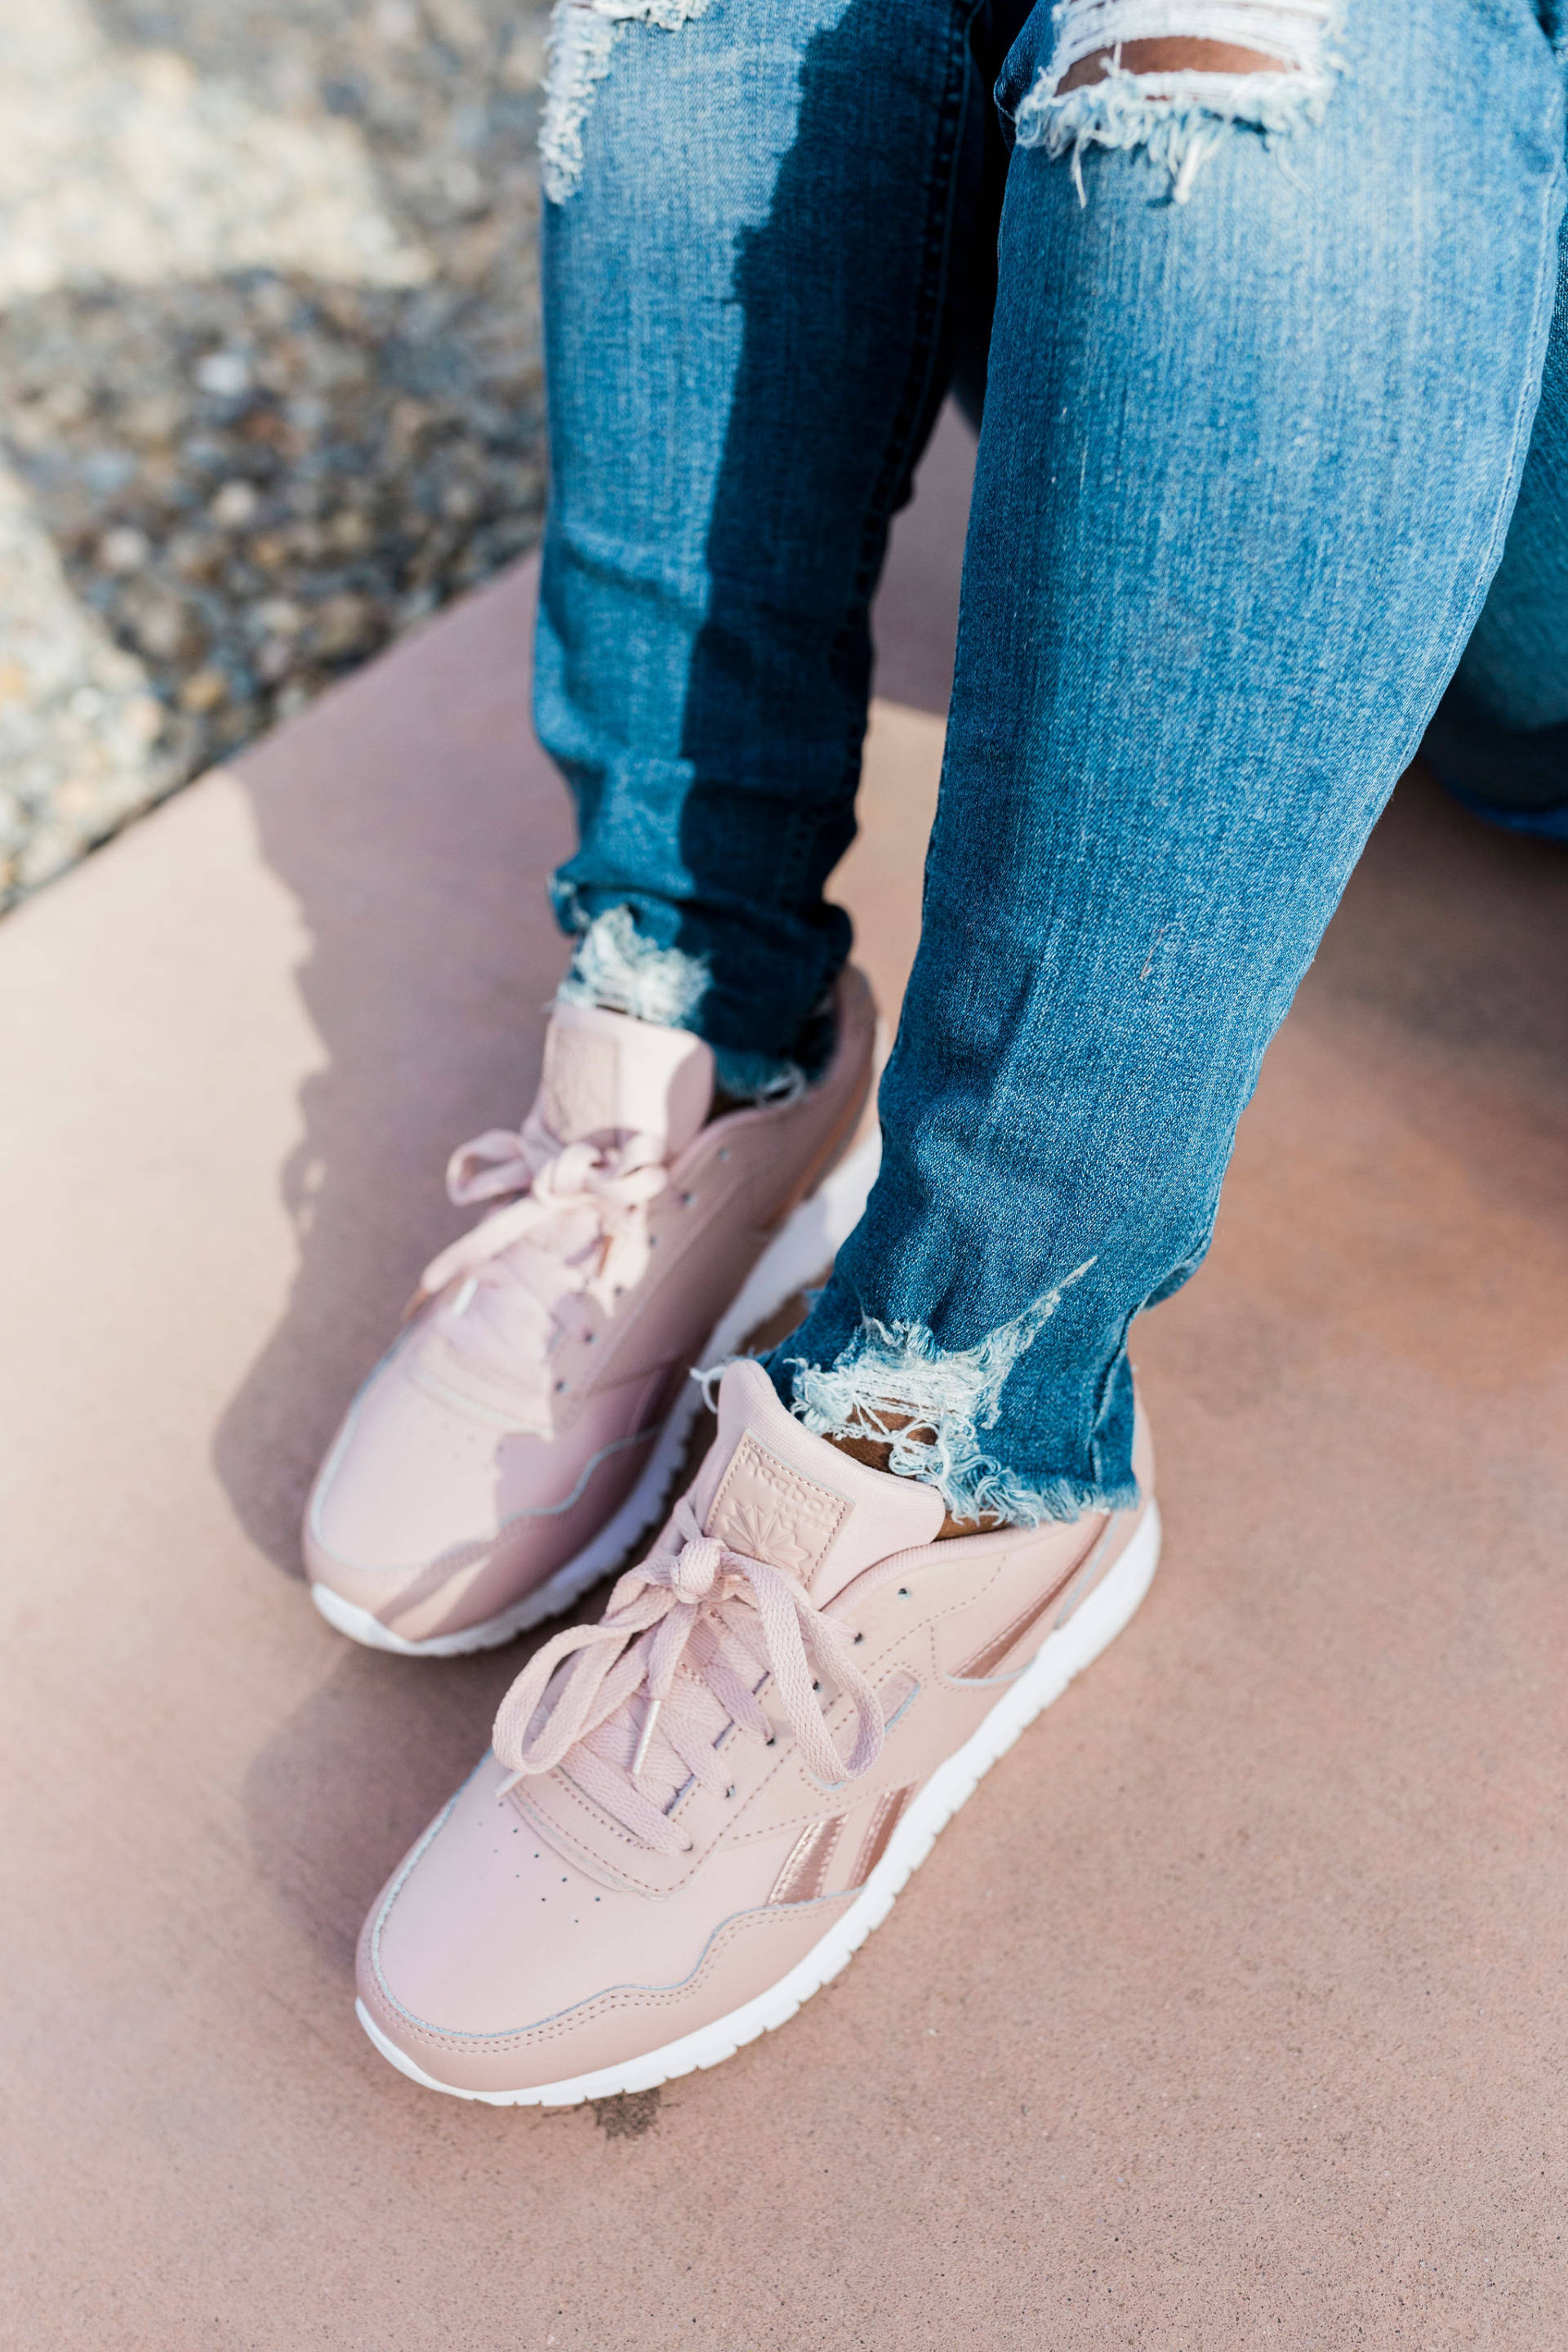 Reebok Classics With Shoe Carnival: They are timeless, classic and can be worn with whatever your heart desires! I am particularly obsessed with how Reebok has managed to continue to surprise me with some of the most amazing color palettes to be found on a sneaker!